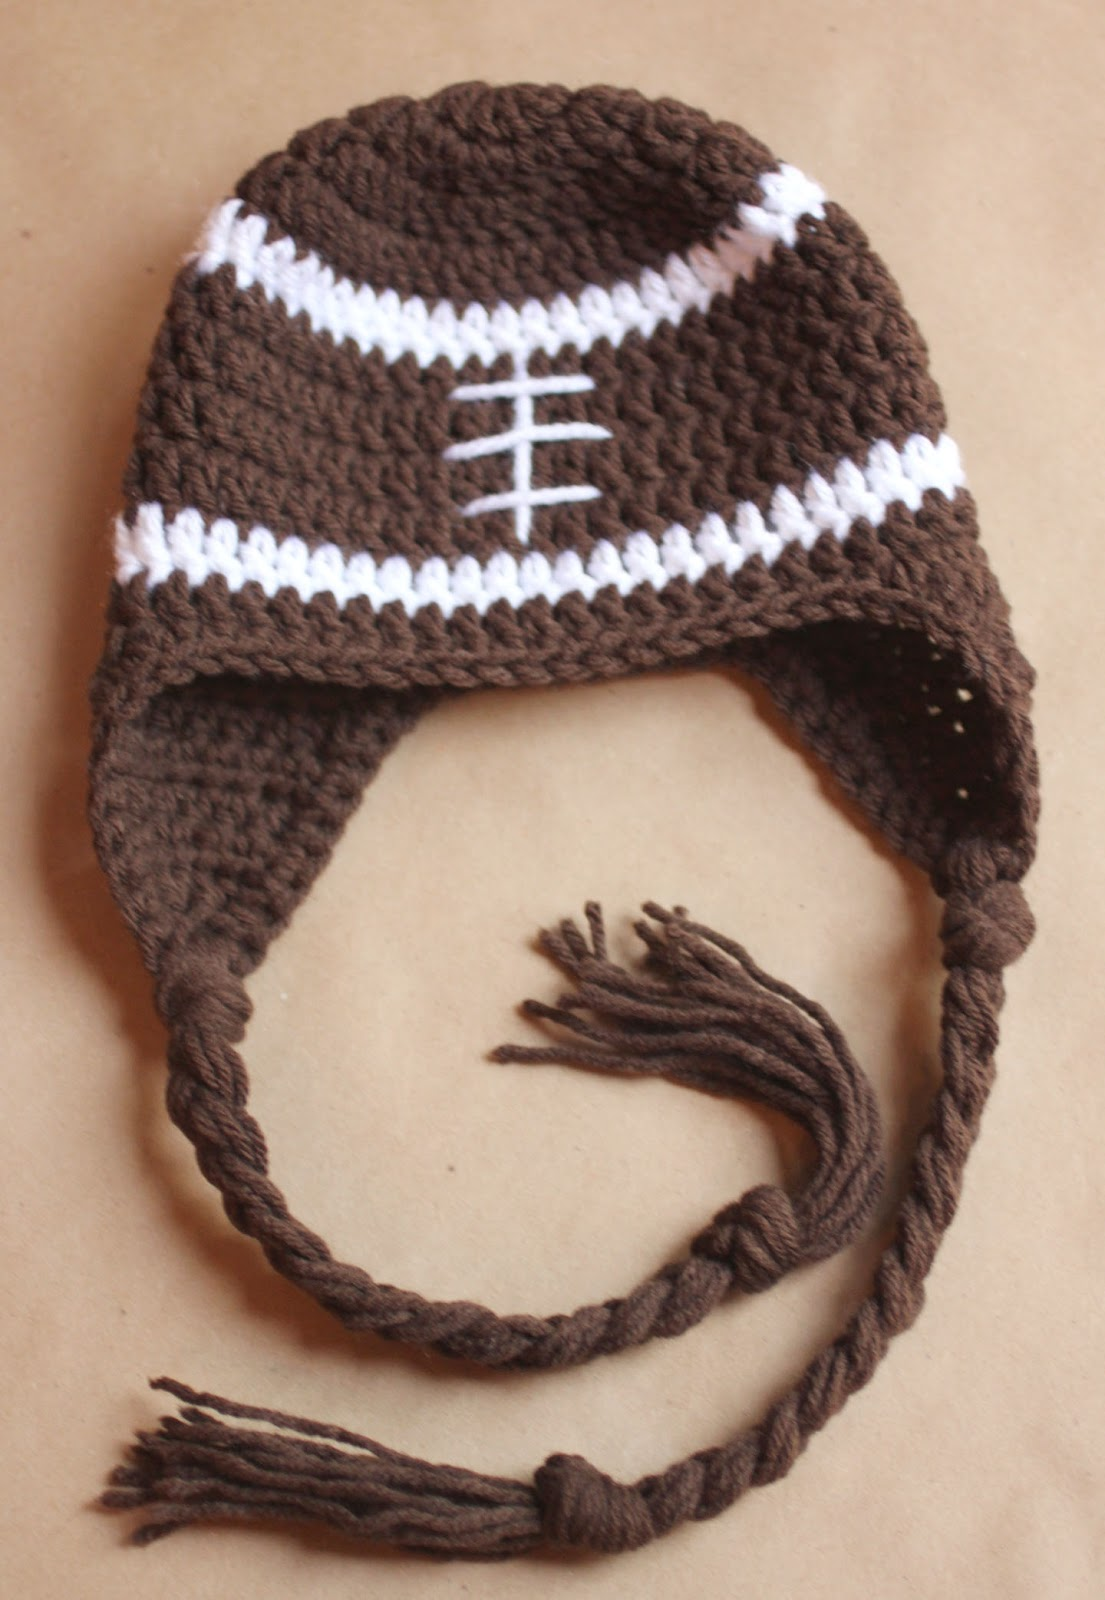 Crochet football earflap hat pattern repeat crafter me i hope you like this pattern let me know if you have any questions bankloansurffo Choice Image